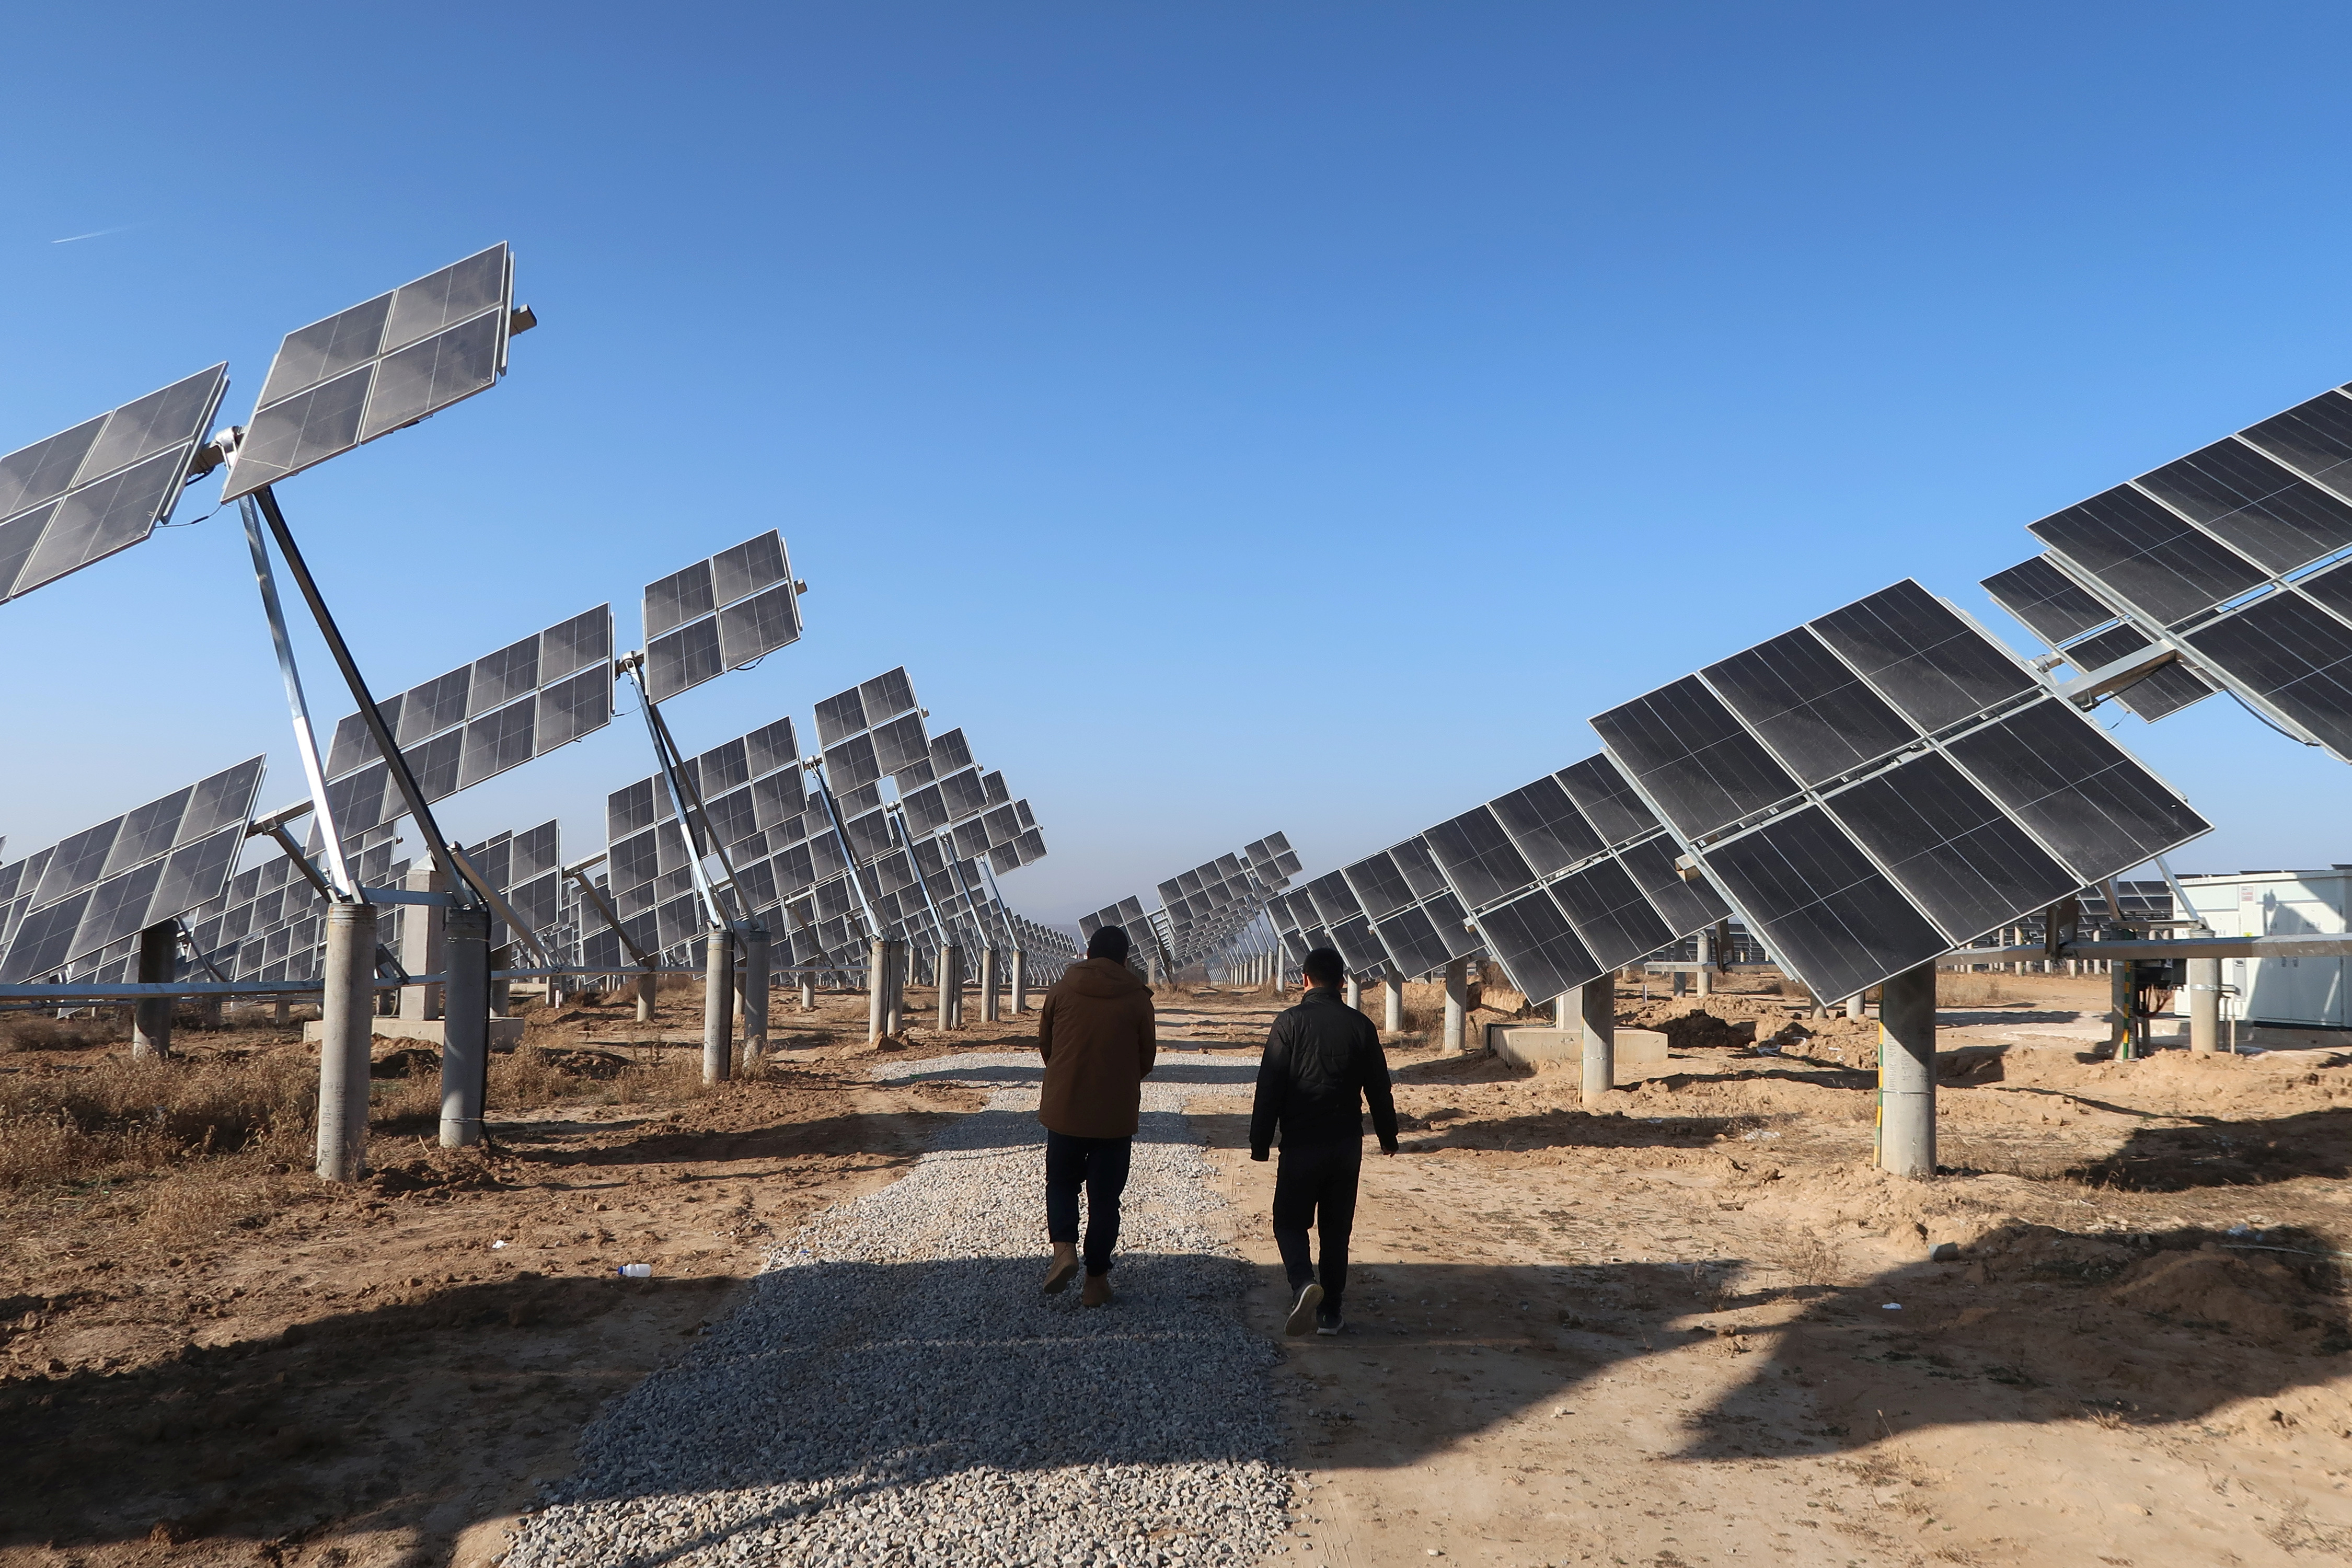 Workers walk at a solar power station in Tongchuan, Shaanxi province, China December 11, 2019. Picture taken December 11, 2019. REUTERS/Muyu Xu